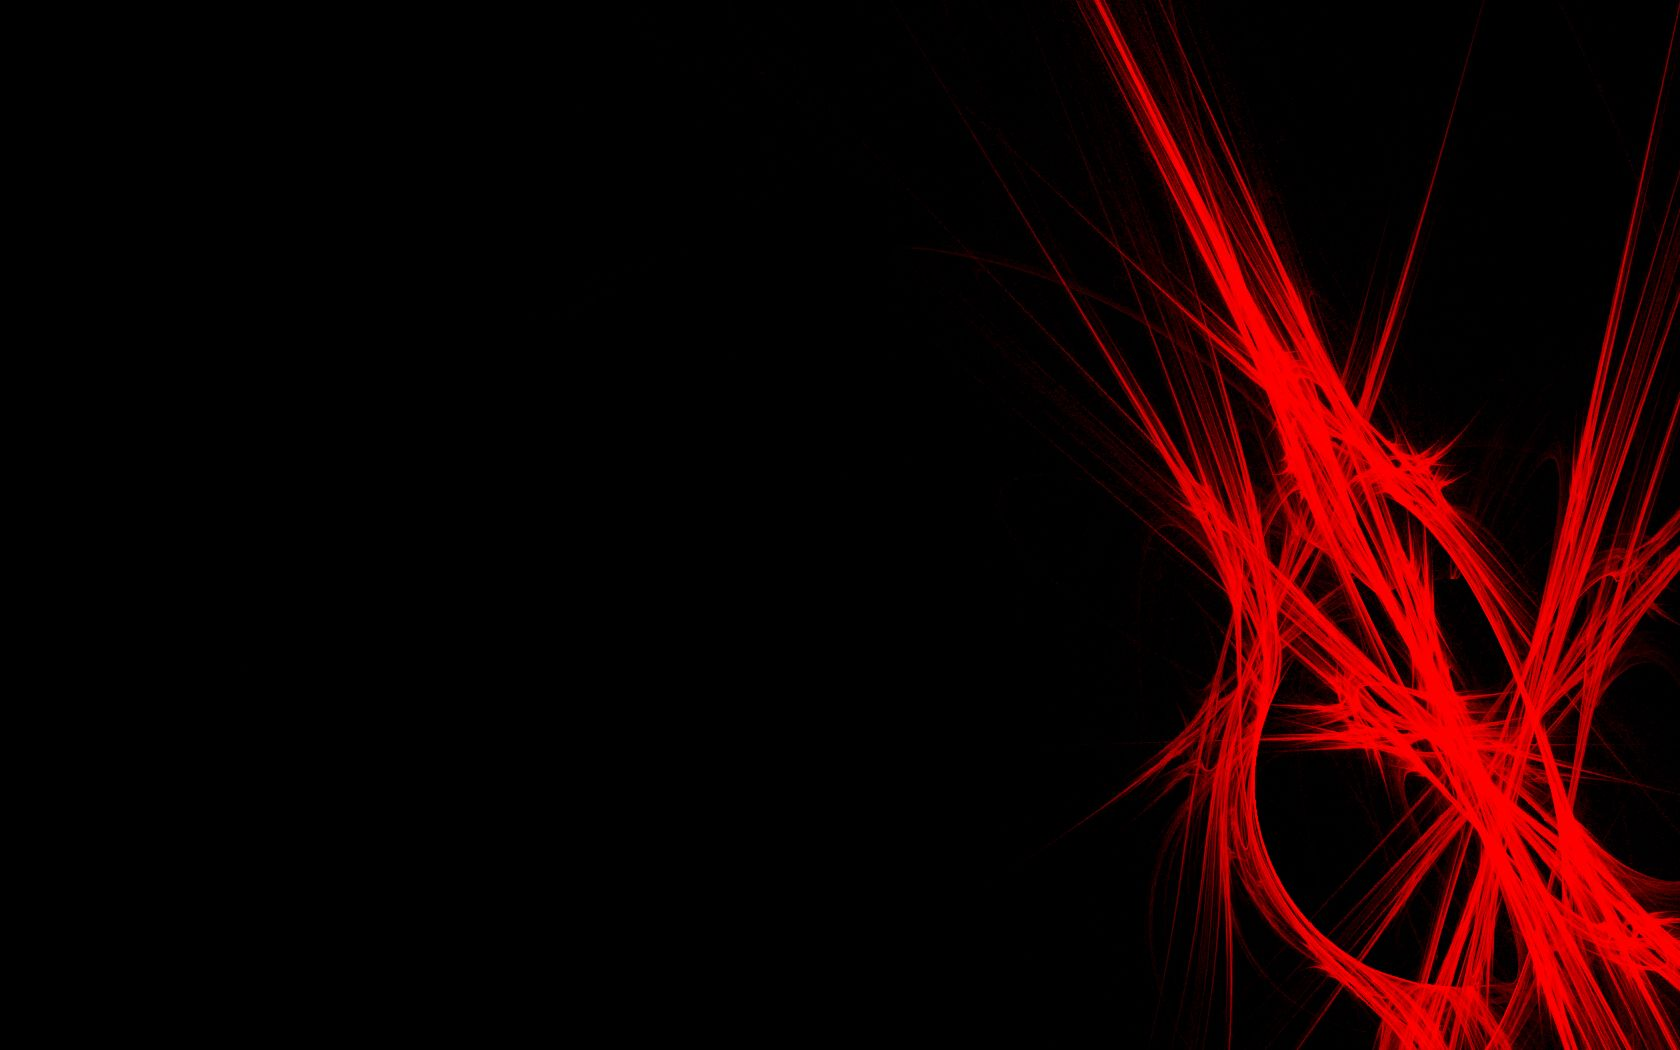 Artistic Computer Wallpaper Desktop Background 1680x1050 Id 483806 Red And Black Background Red And White Wallpaper Red And Black Wallpaper